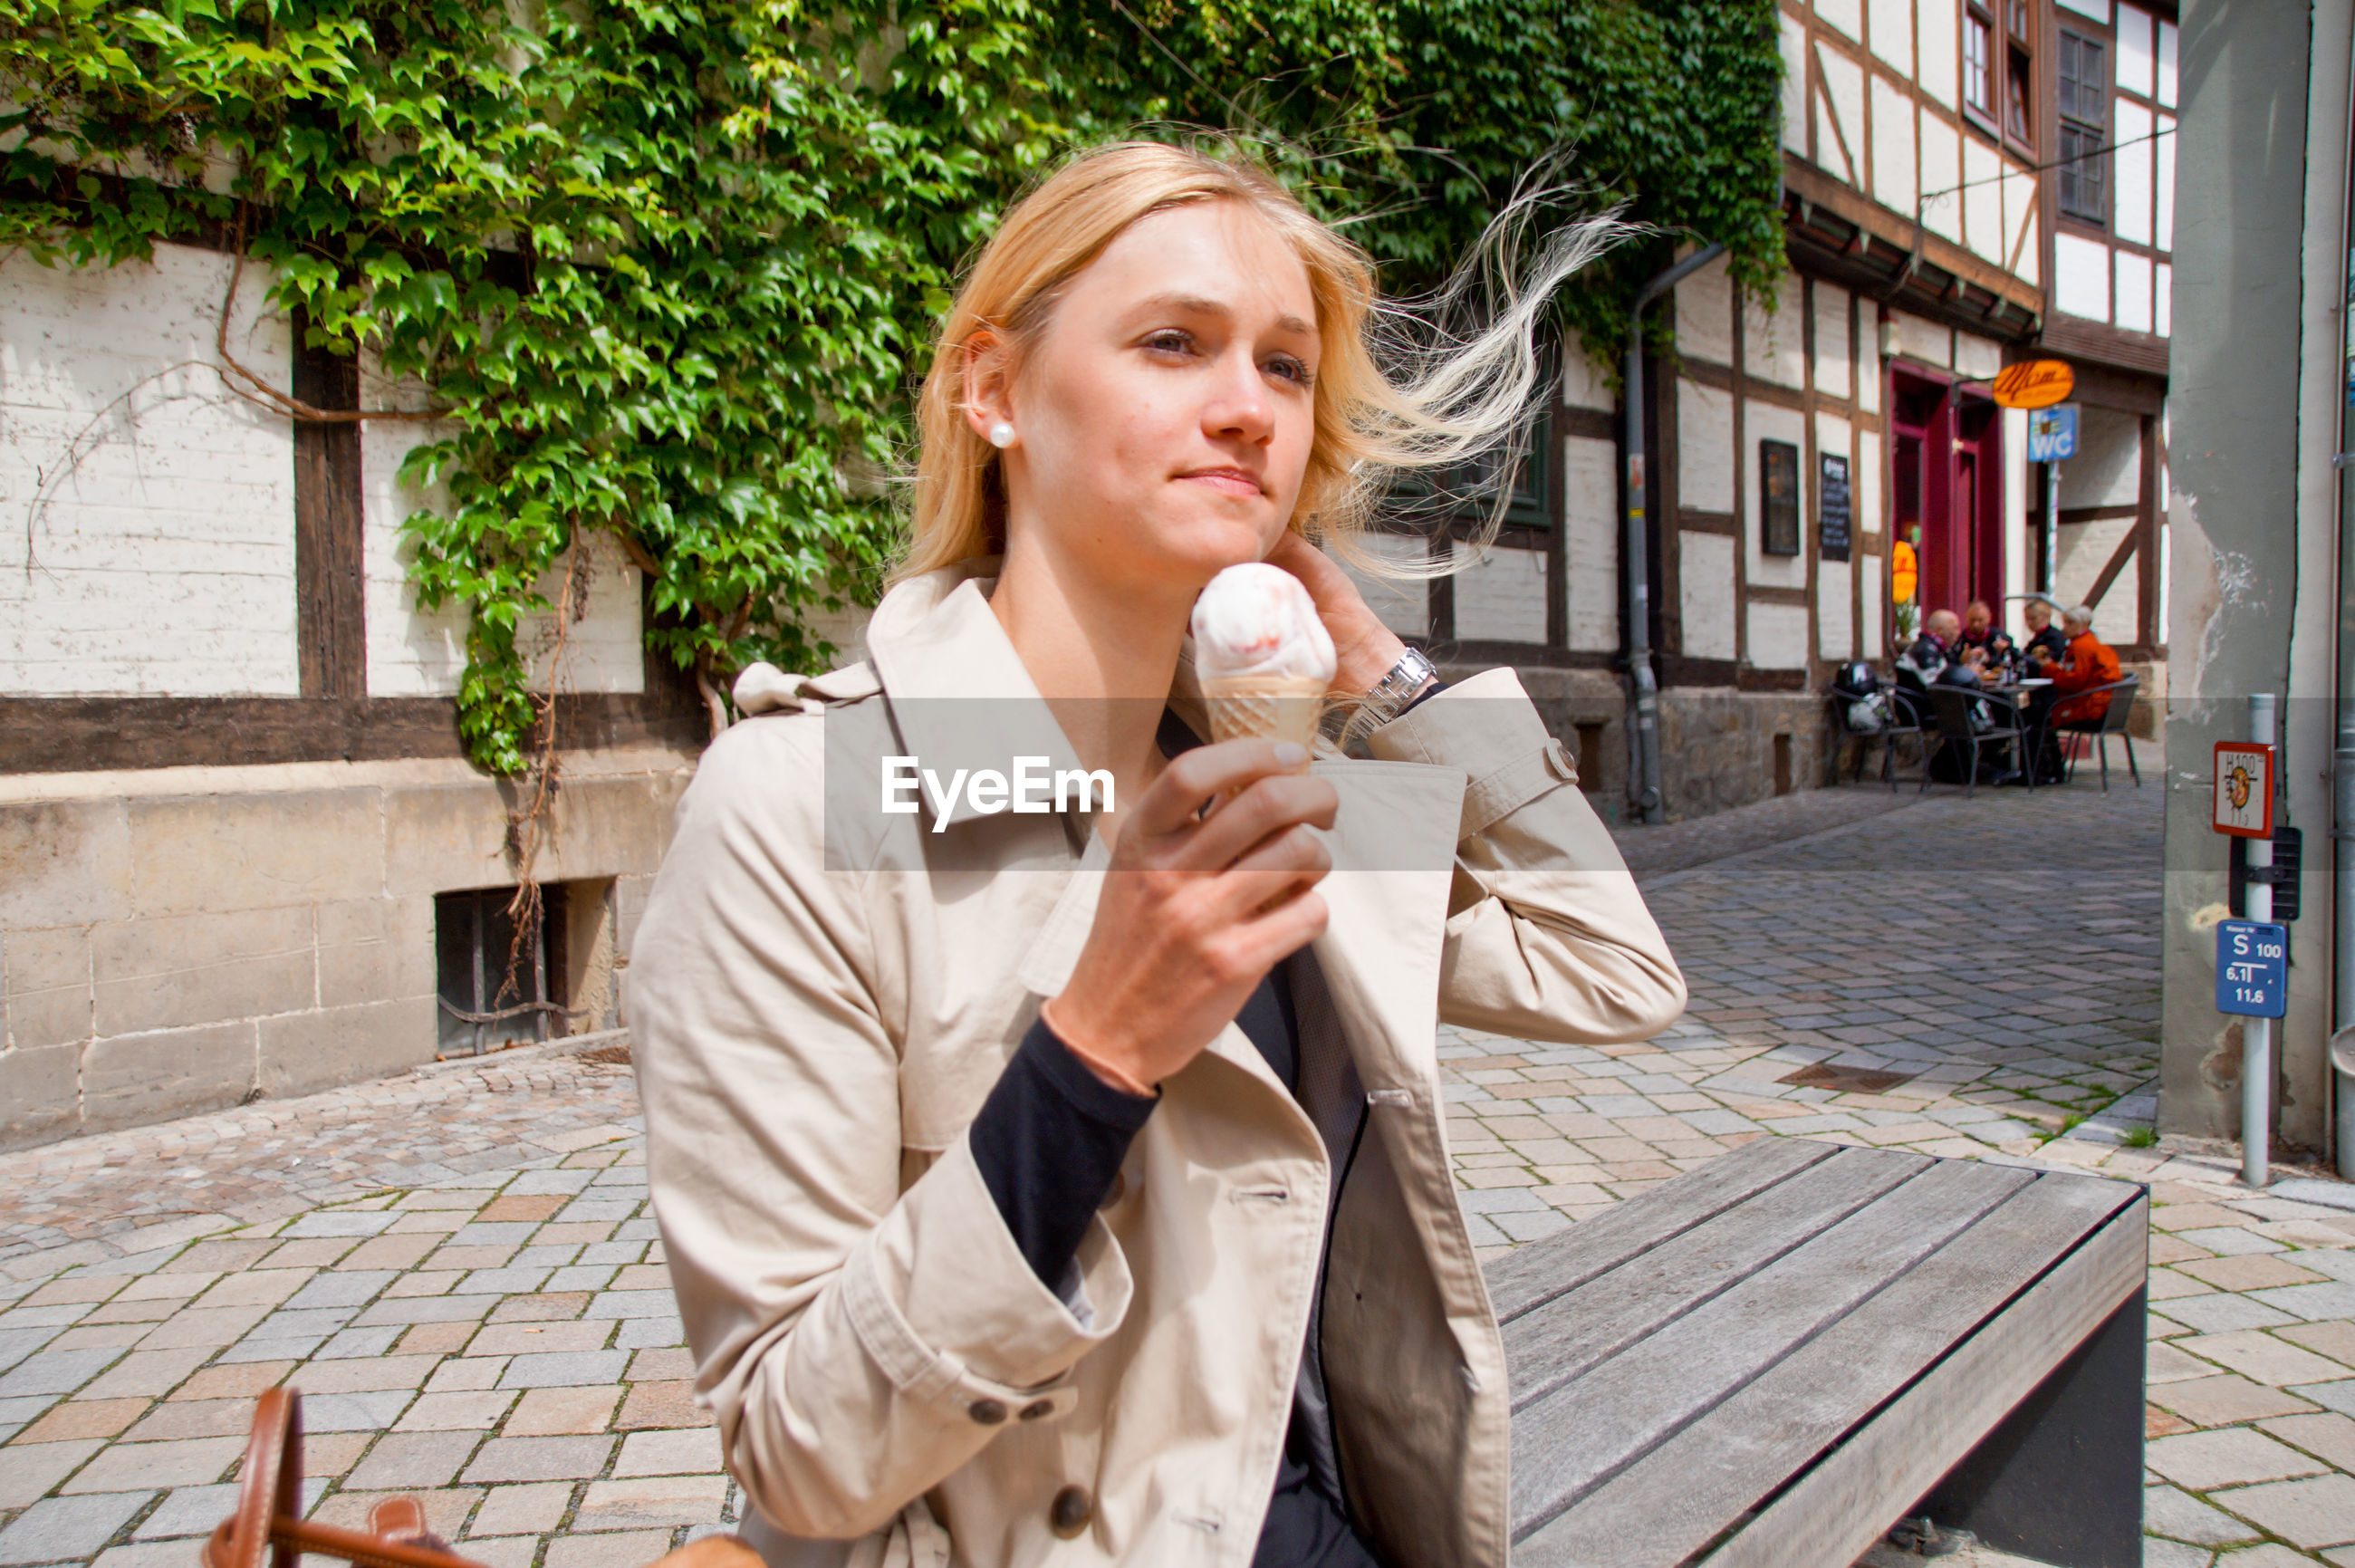 Young woman eating ice cream while sitting on bench in city